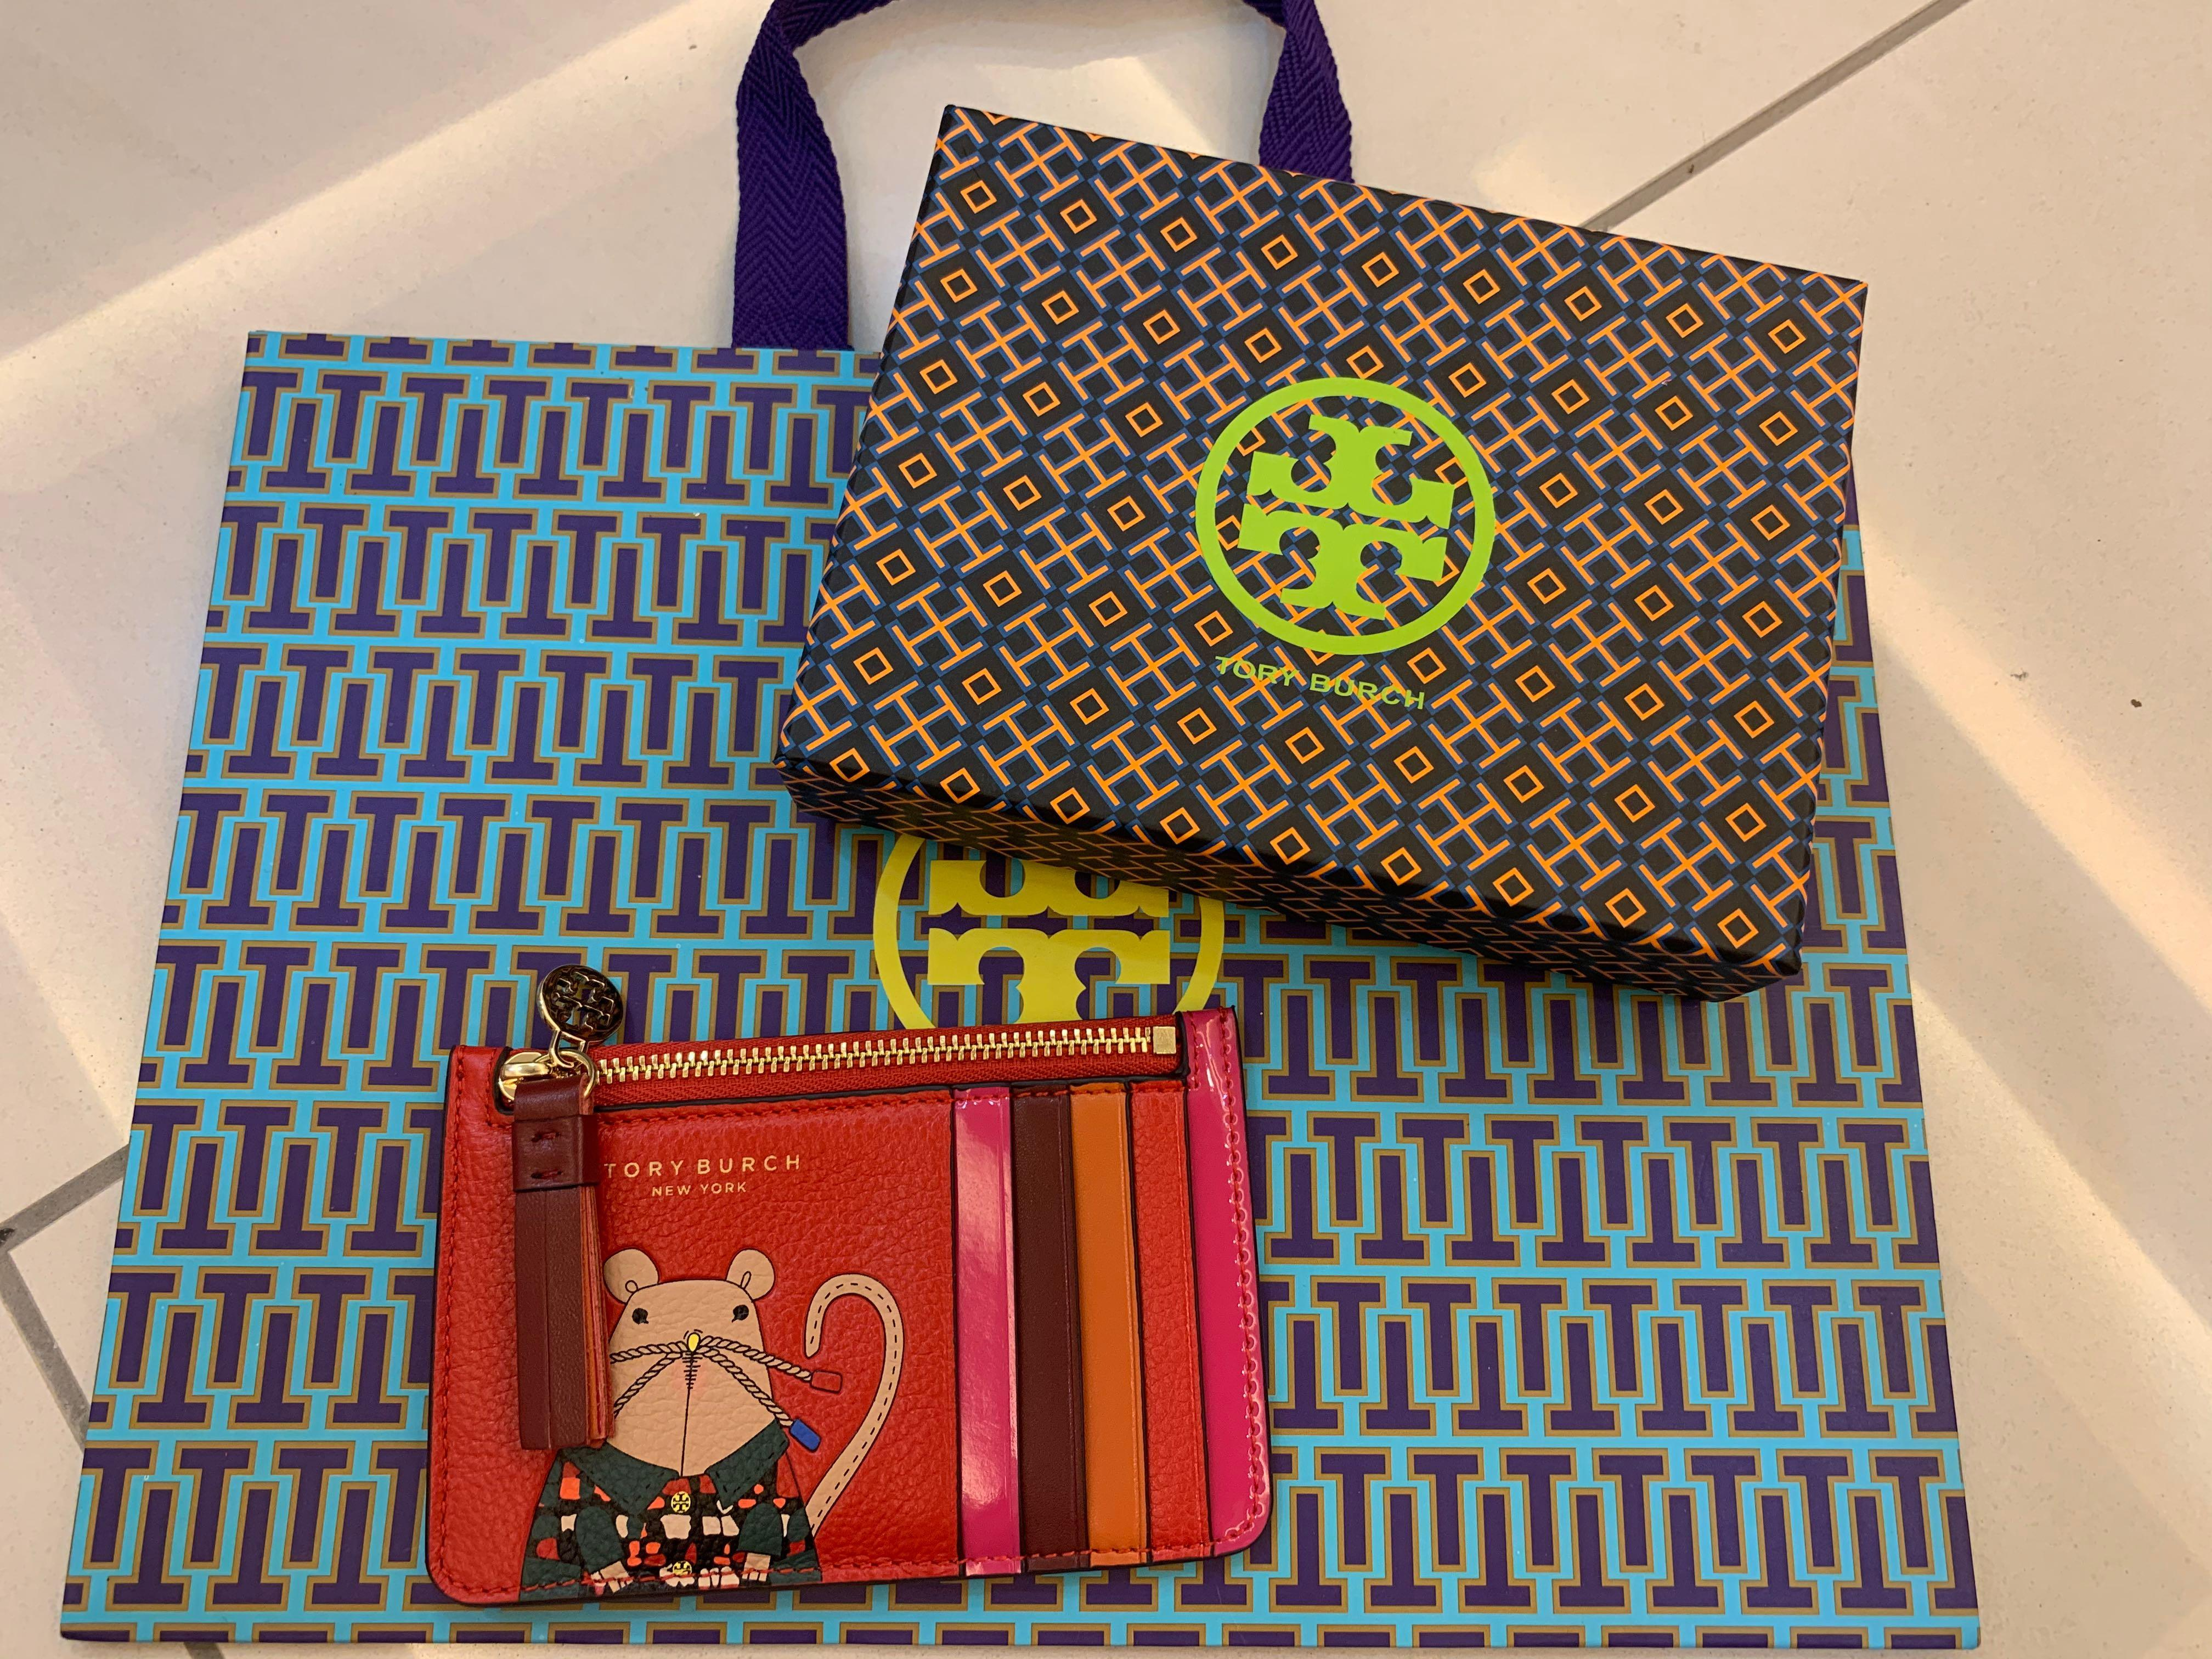 Ready Stock authentic lunar collection Tory Burch card holder with zip Mike jjj